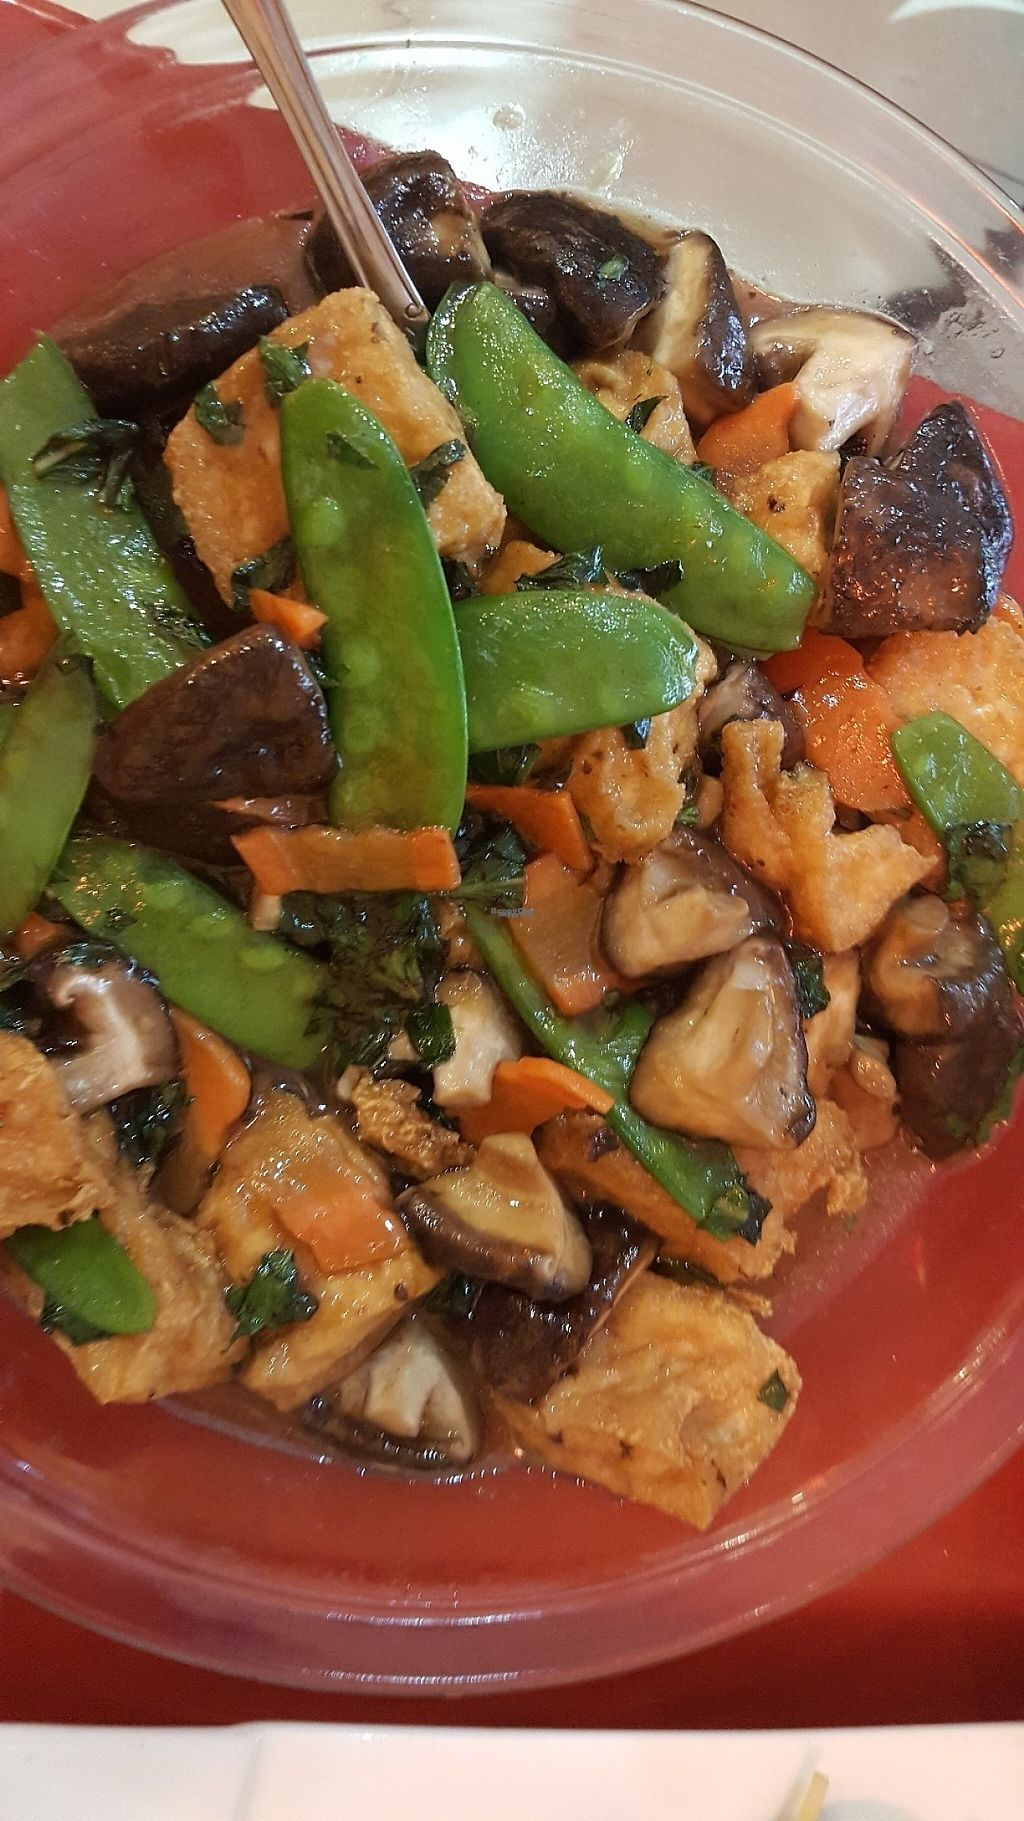 """Photo of Buddha Bodai - Mulberry St  by <a href=""""/members/profile/debbiesmall"""">debbiesmall</a> <br/>Tofu and mushroom with basil <br/> March 22, 2017  - <a href='/contact/abuse/image/57438/239346'>Report</a>"""